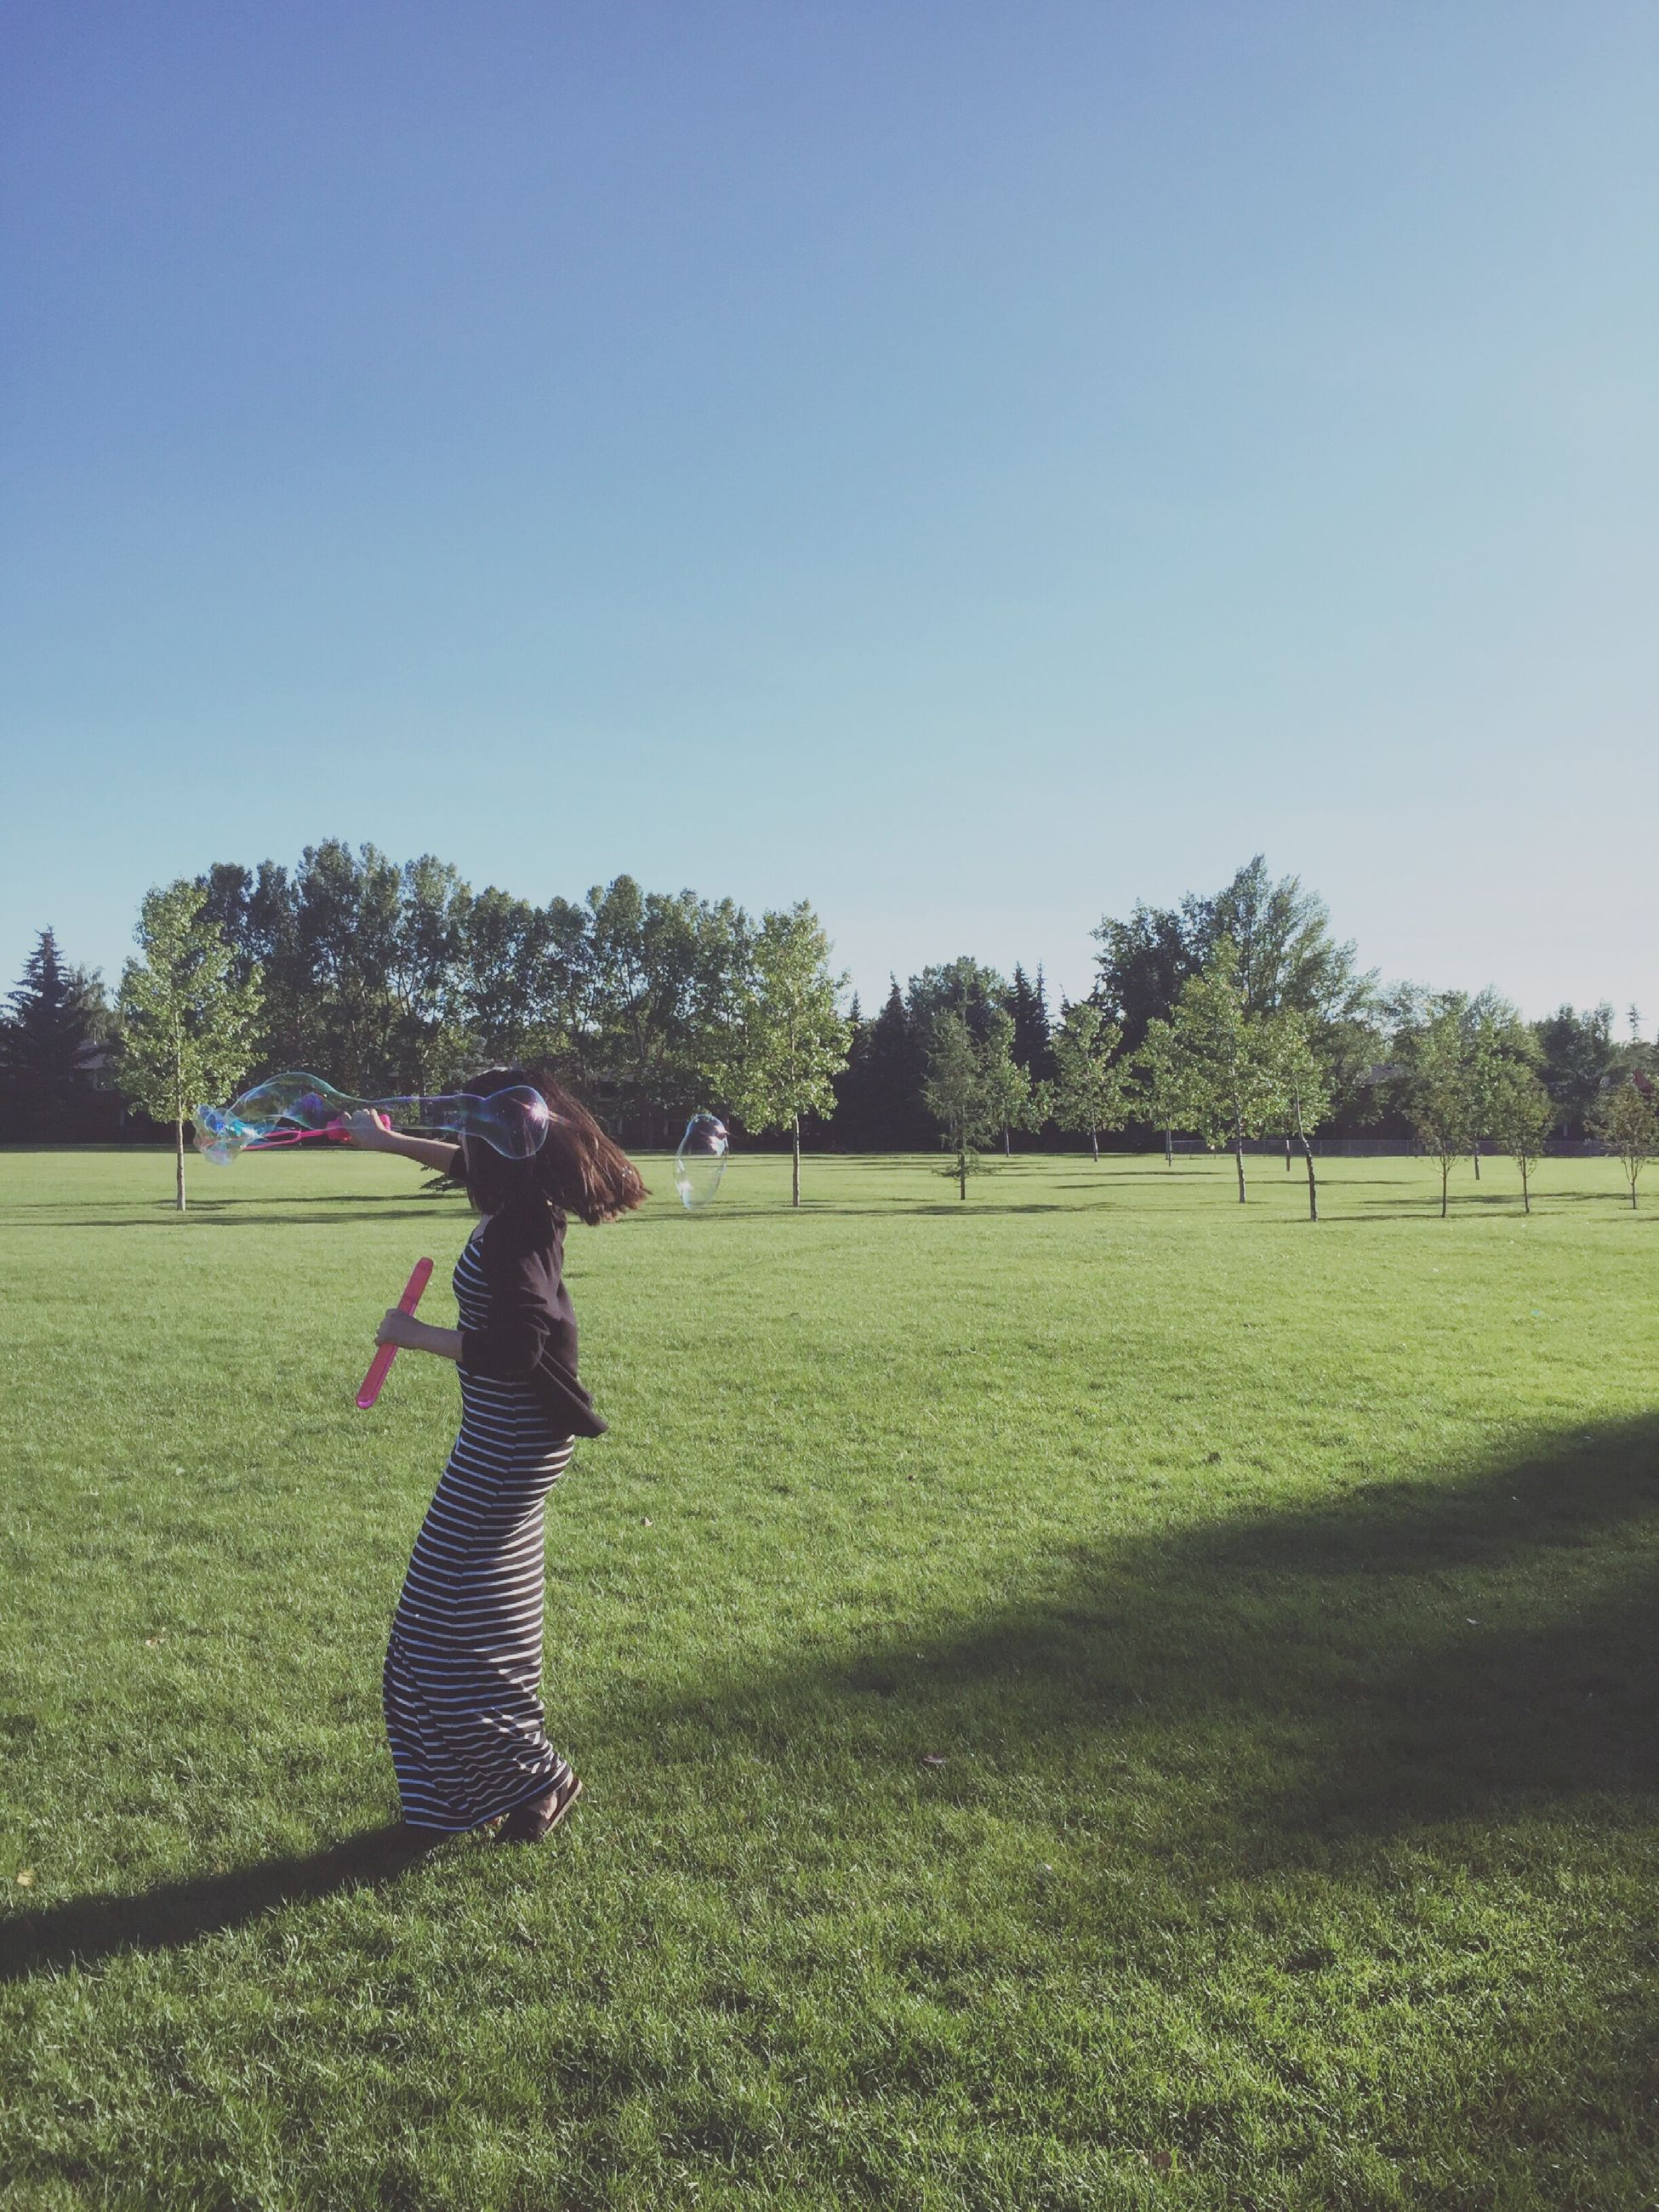 leisure activity, tree, lifestyles, grass, clear sky, field, full length, childhood, copy space, shadow, sunlight, green color, side view, casual clothing, playing, sport, rural scene, innocence, growth, enjoyment, grassy, fun, carefree, day, blue, tranquility, tranquil scene, nature